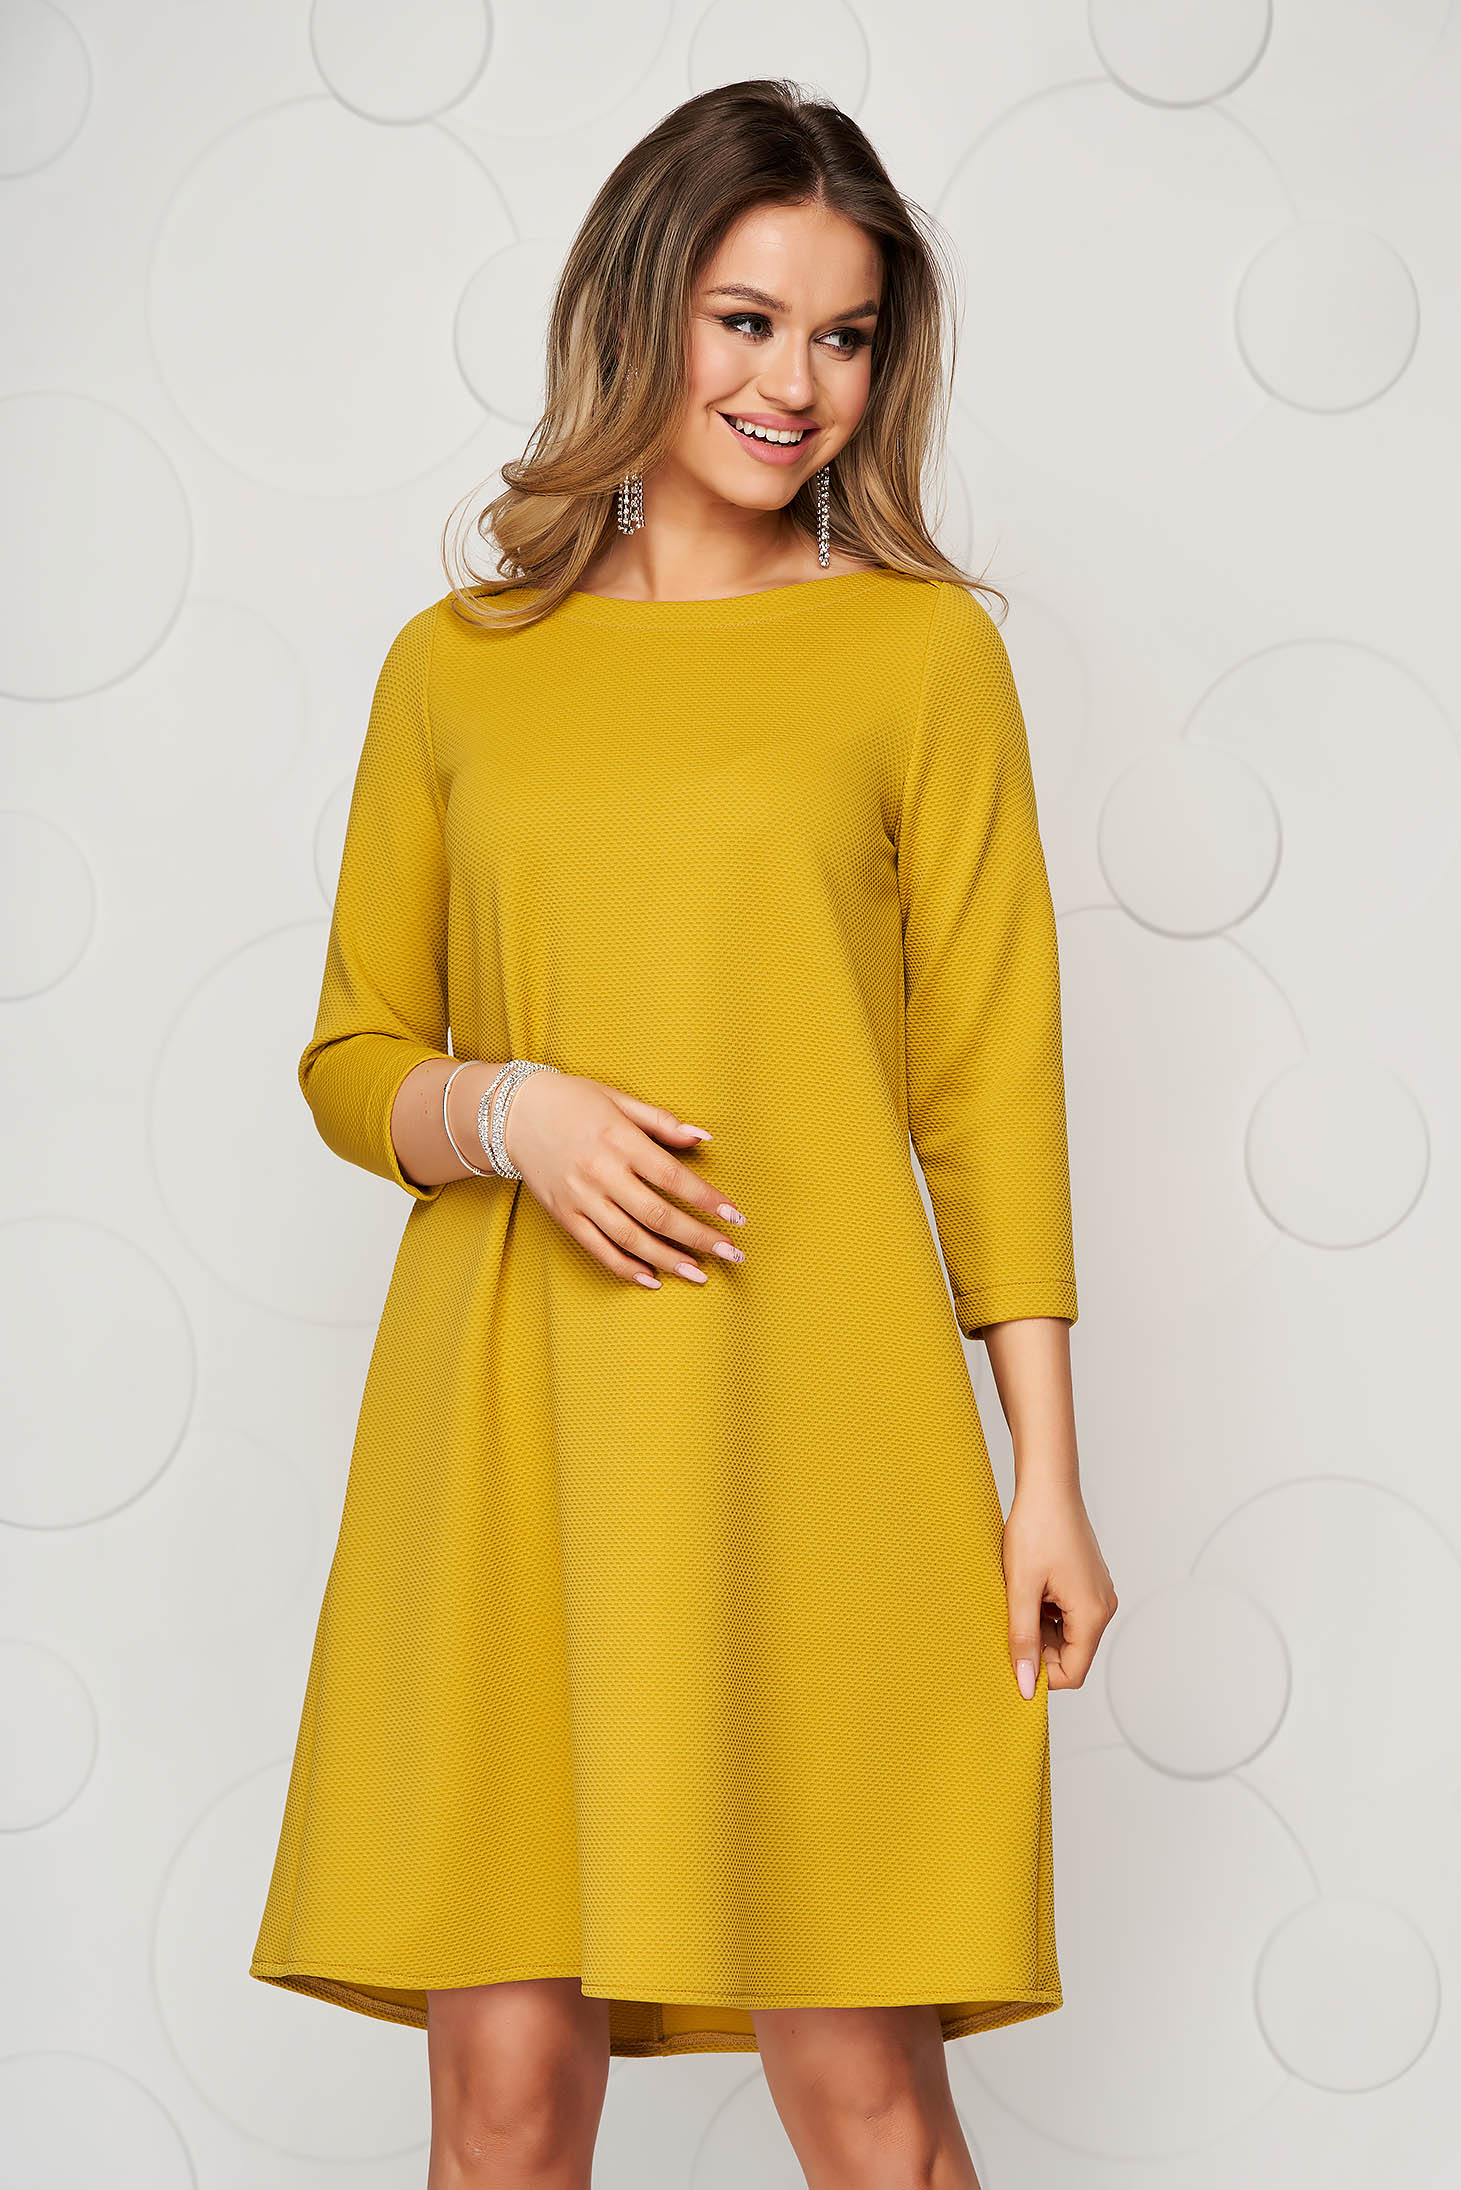 StarShinerS yellow dress short cut loose fit from elastic fabric